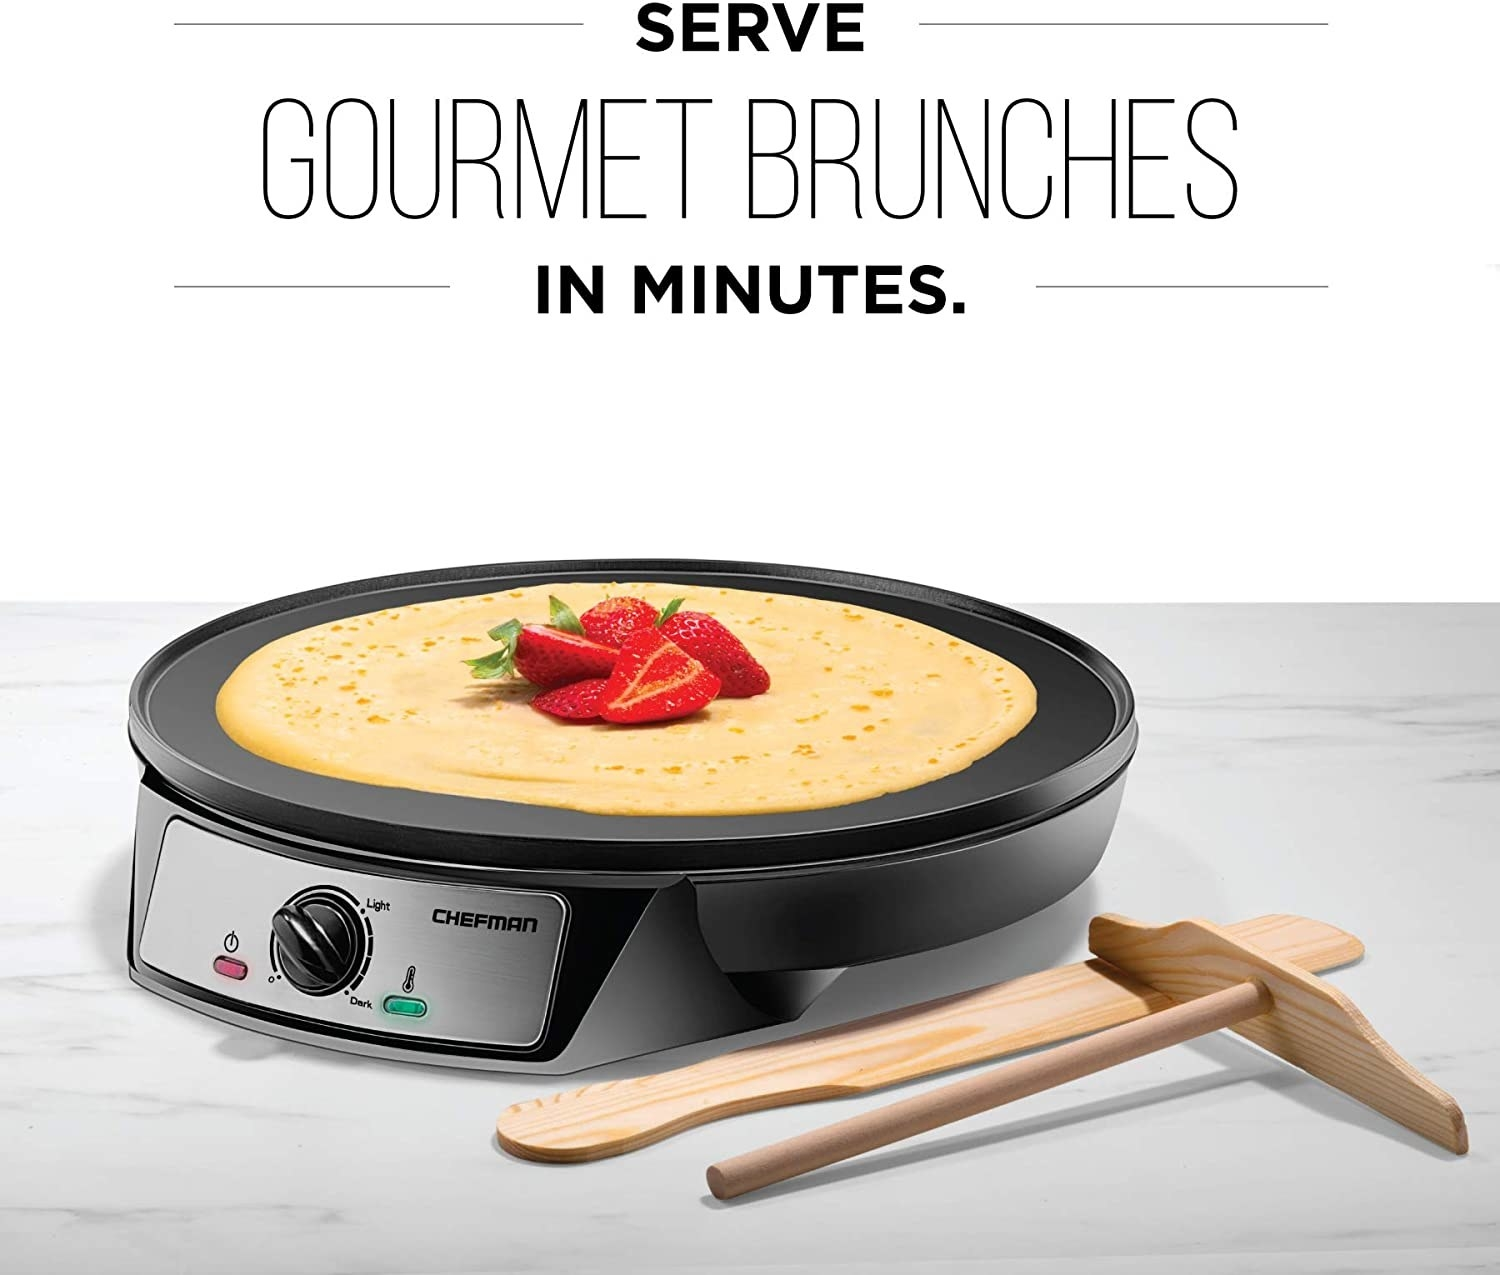 """The crepe maker and tools with text """"serve gourmet brunches in minutes"""""""